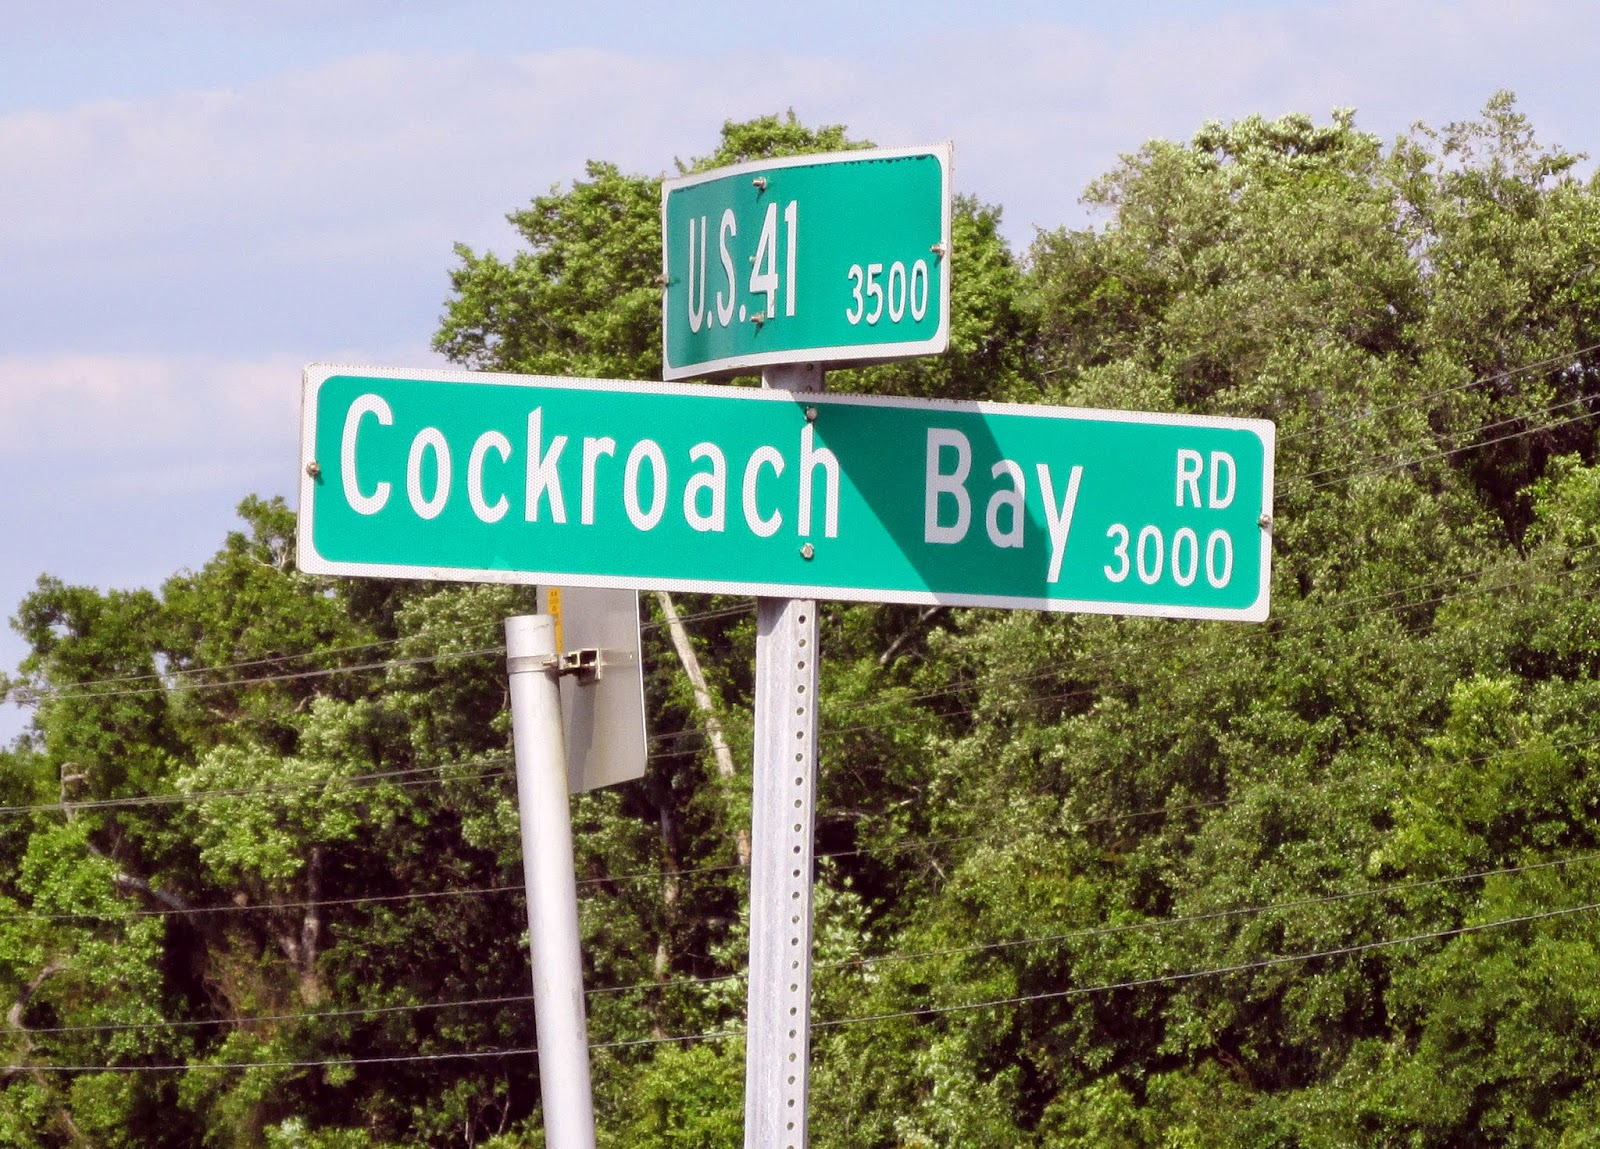 Eccentric Street Name of The